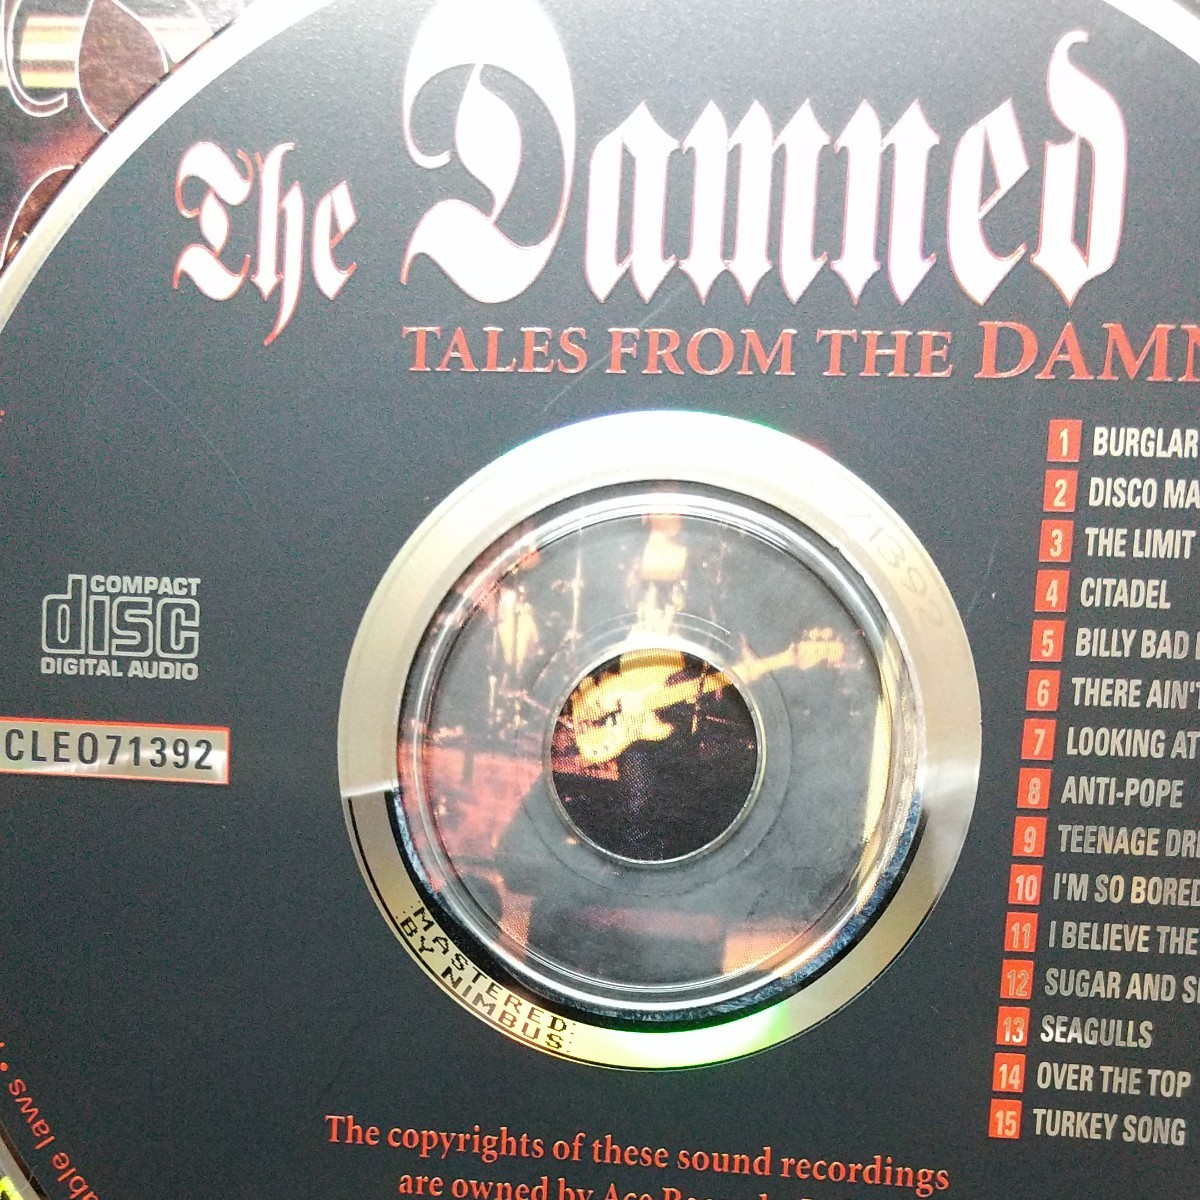 the damned/tales from the damned